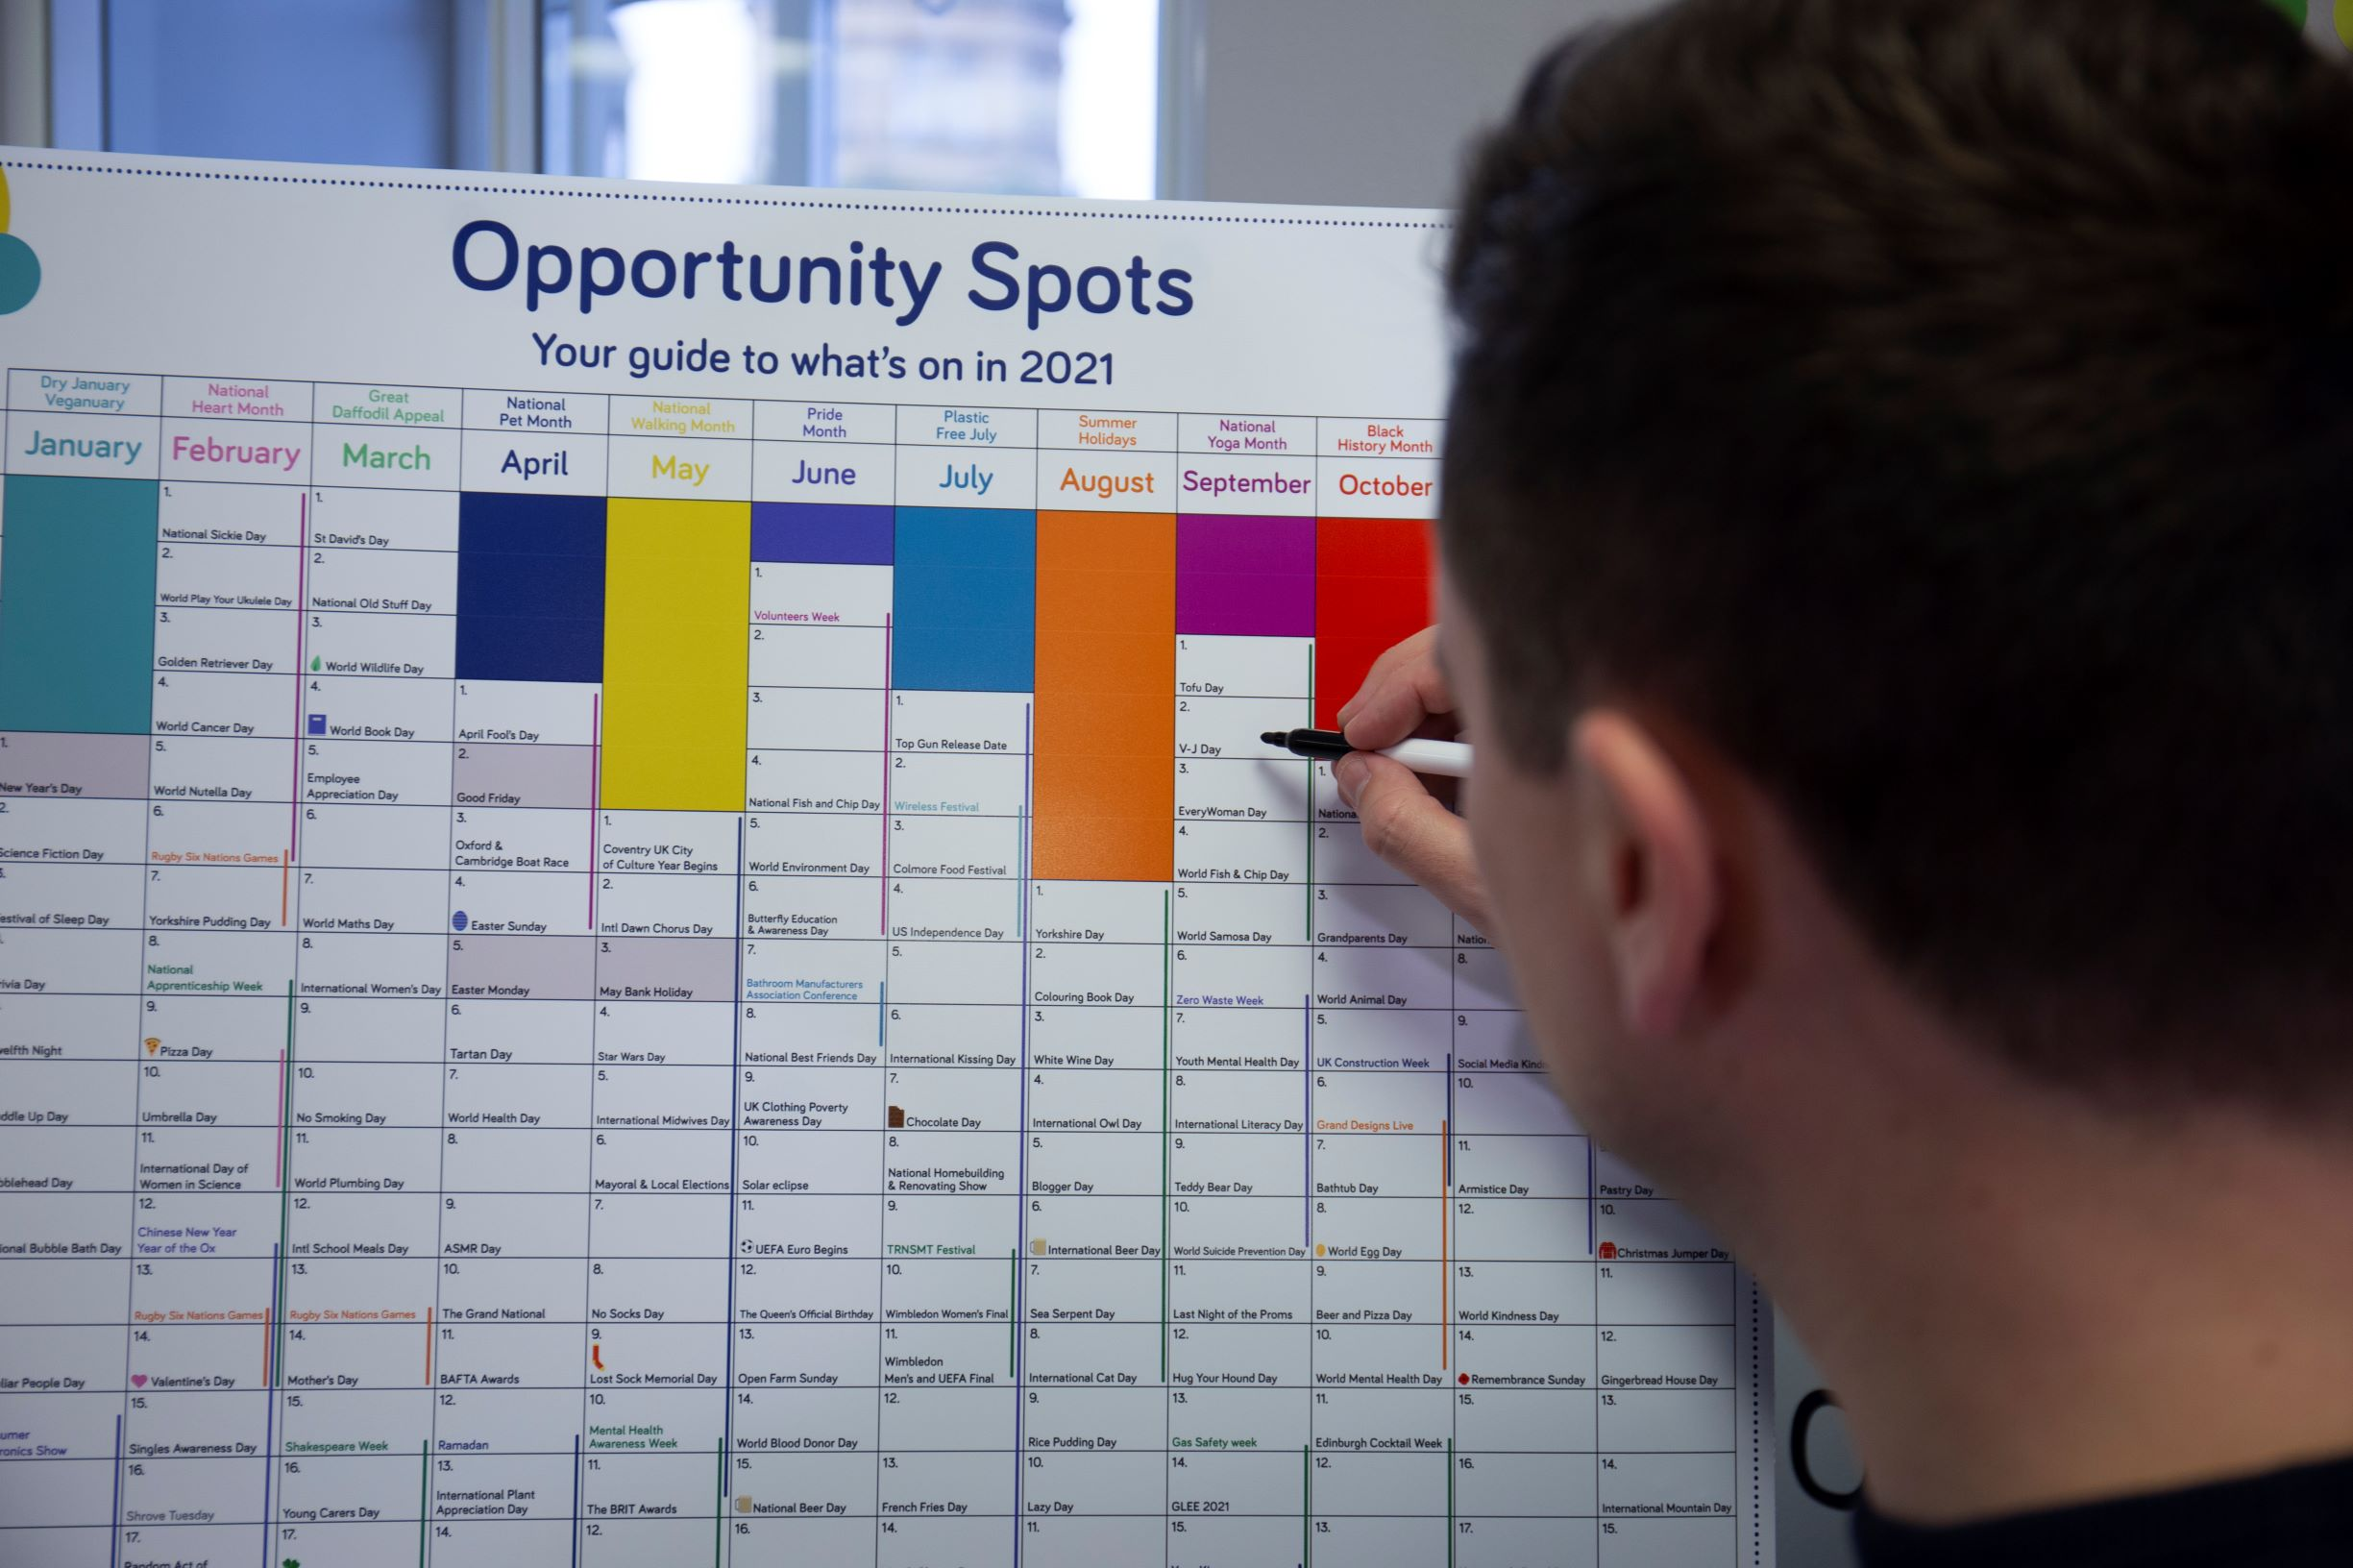 Social Media Strategy: Download your copy of our Opportunity Spots planner